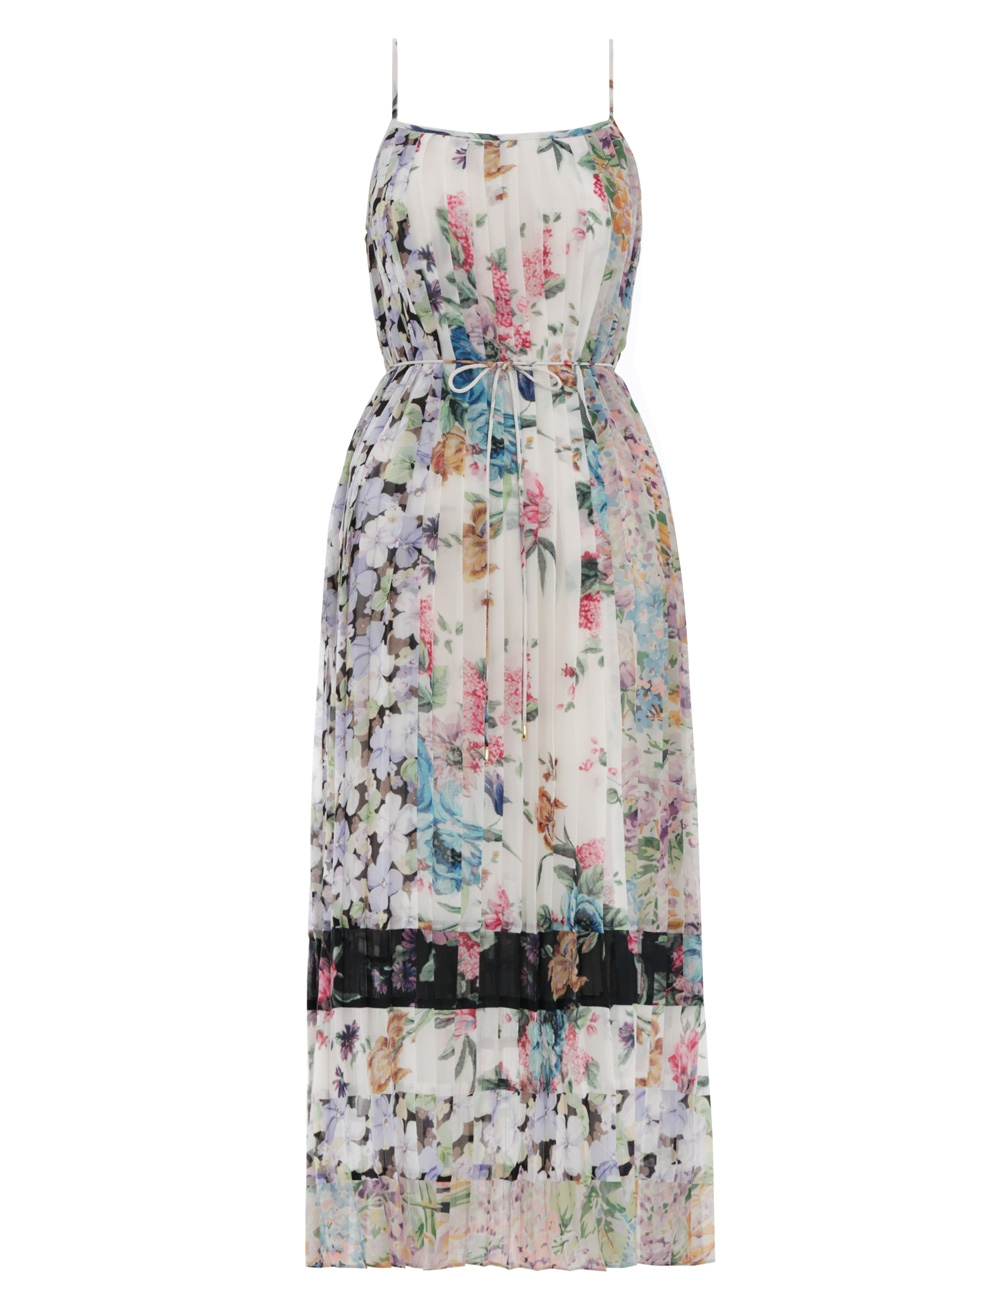 3ee581705a47 1.5954dnin.mufl.multi_floral-ninety-six-pleated-slip-dress -flat.jpg?width=500&height=645&canvas=500:645&quality=100&bg-color=255,255,255&fit=bounds